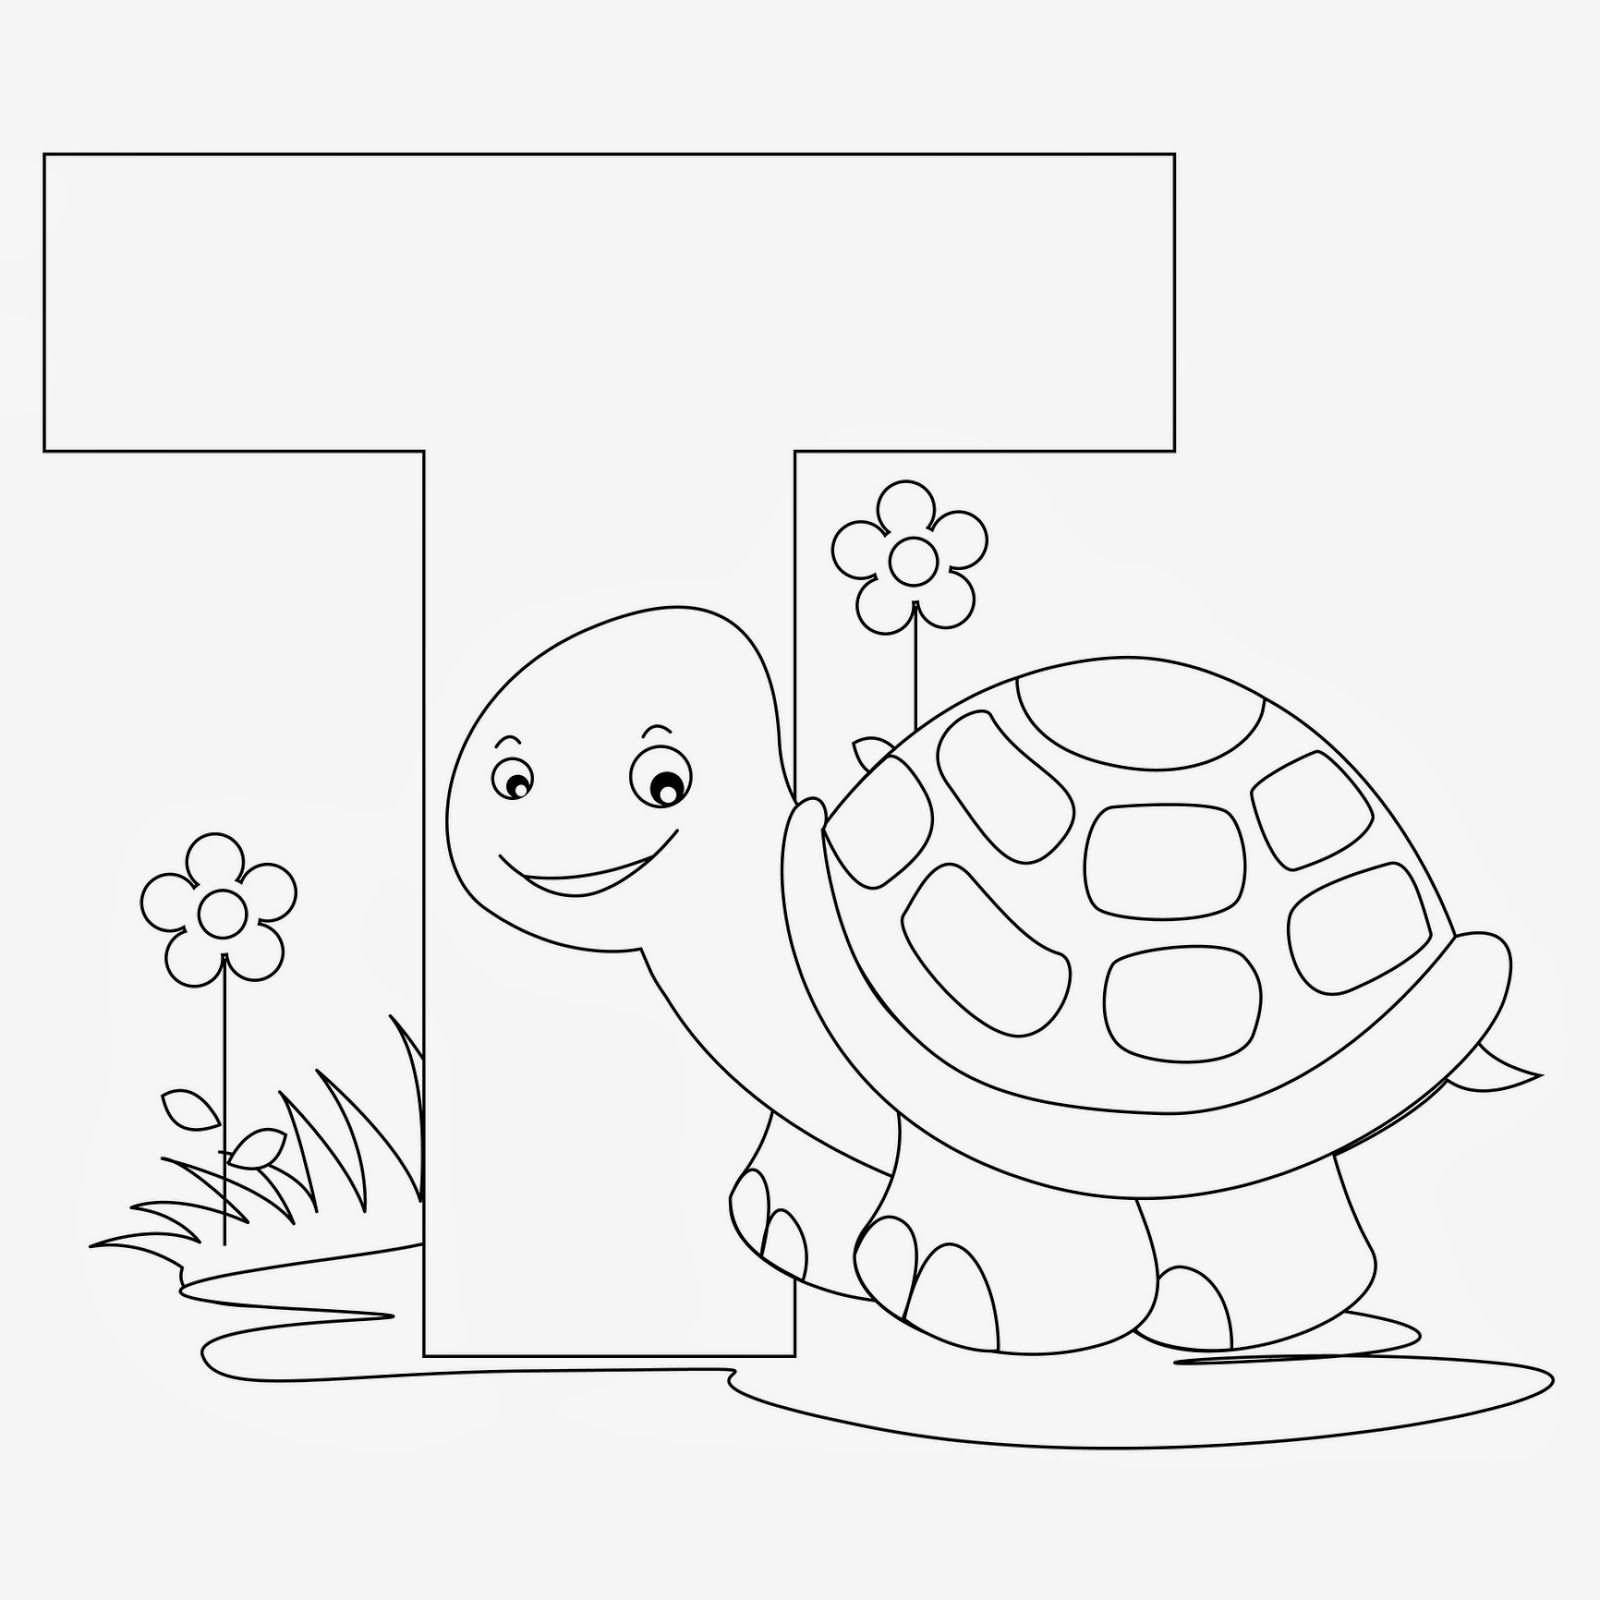 letter a coloring page fun learn free worksheets for kid ภาพระบายส abc a z coloring letter page a